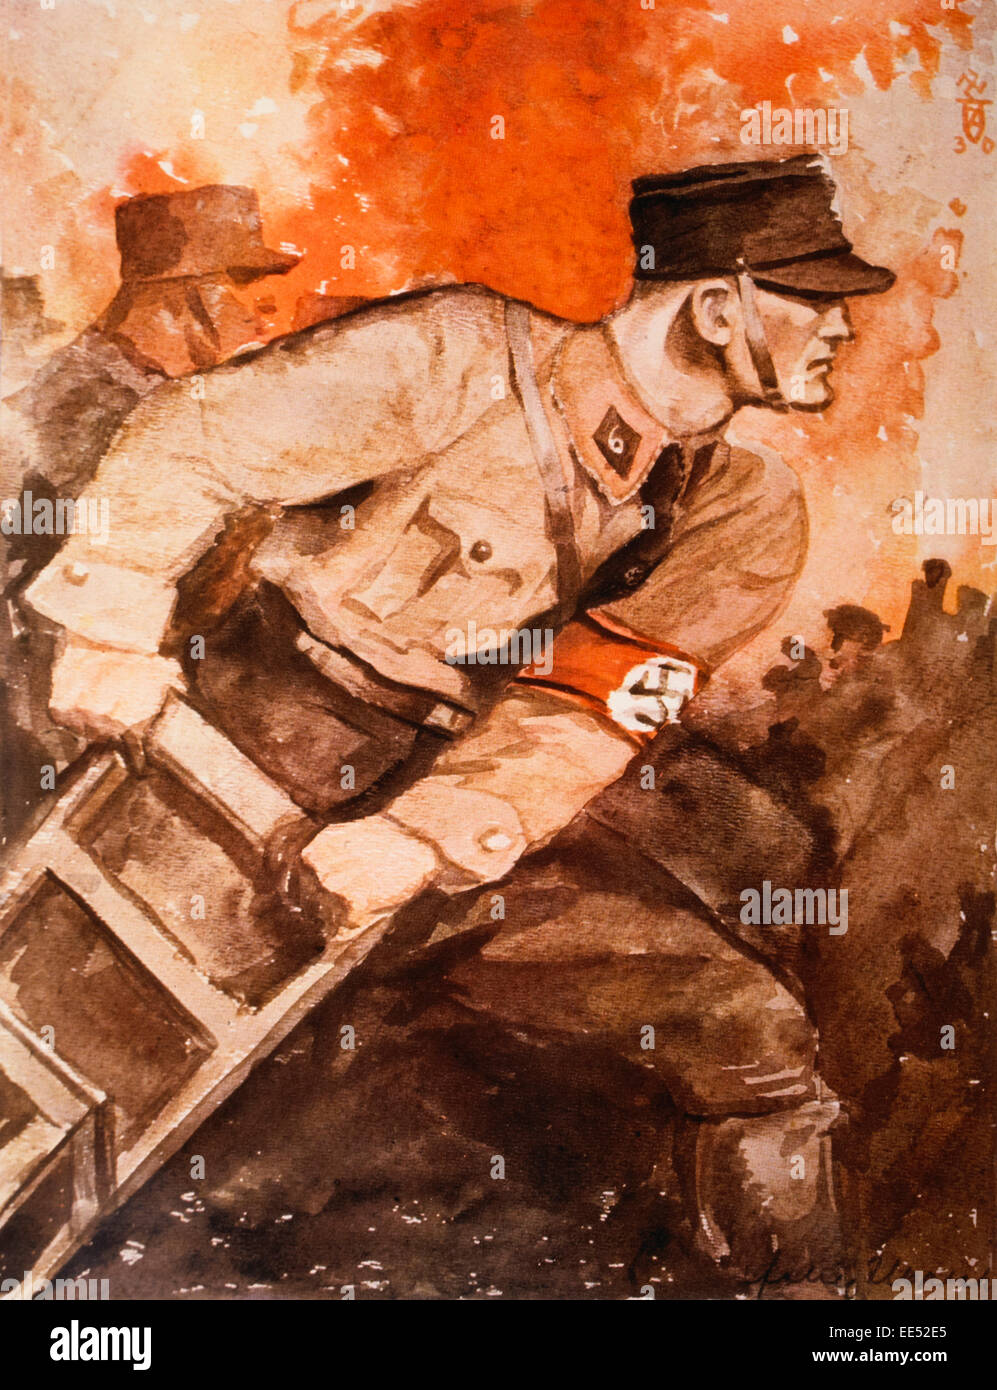 Nazi Party Election Poster, 'One Can Only Combat Terror from the Left with Sharper Terror', Germany, 1920's - Stock Image